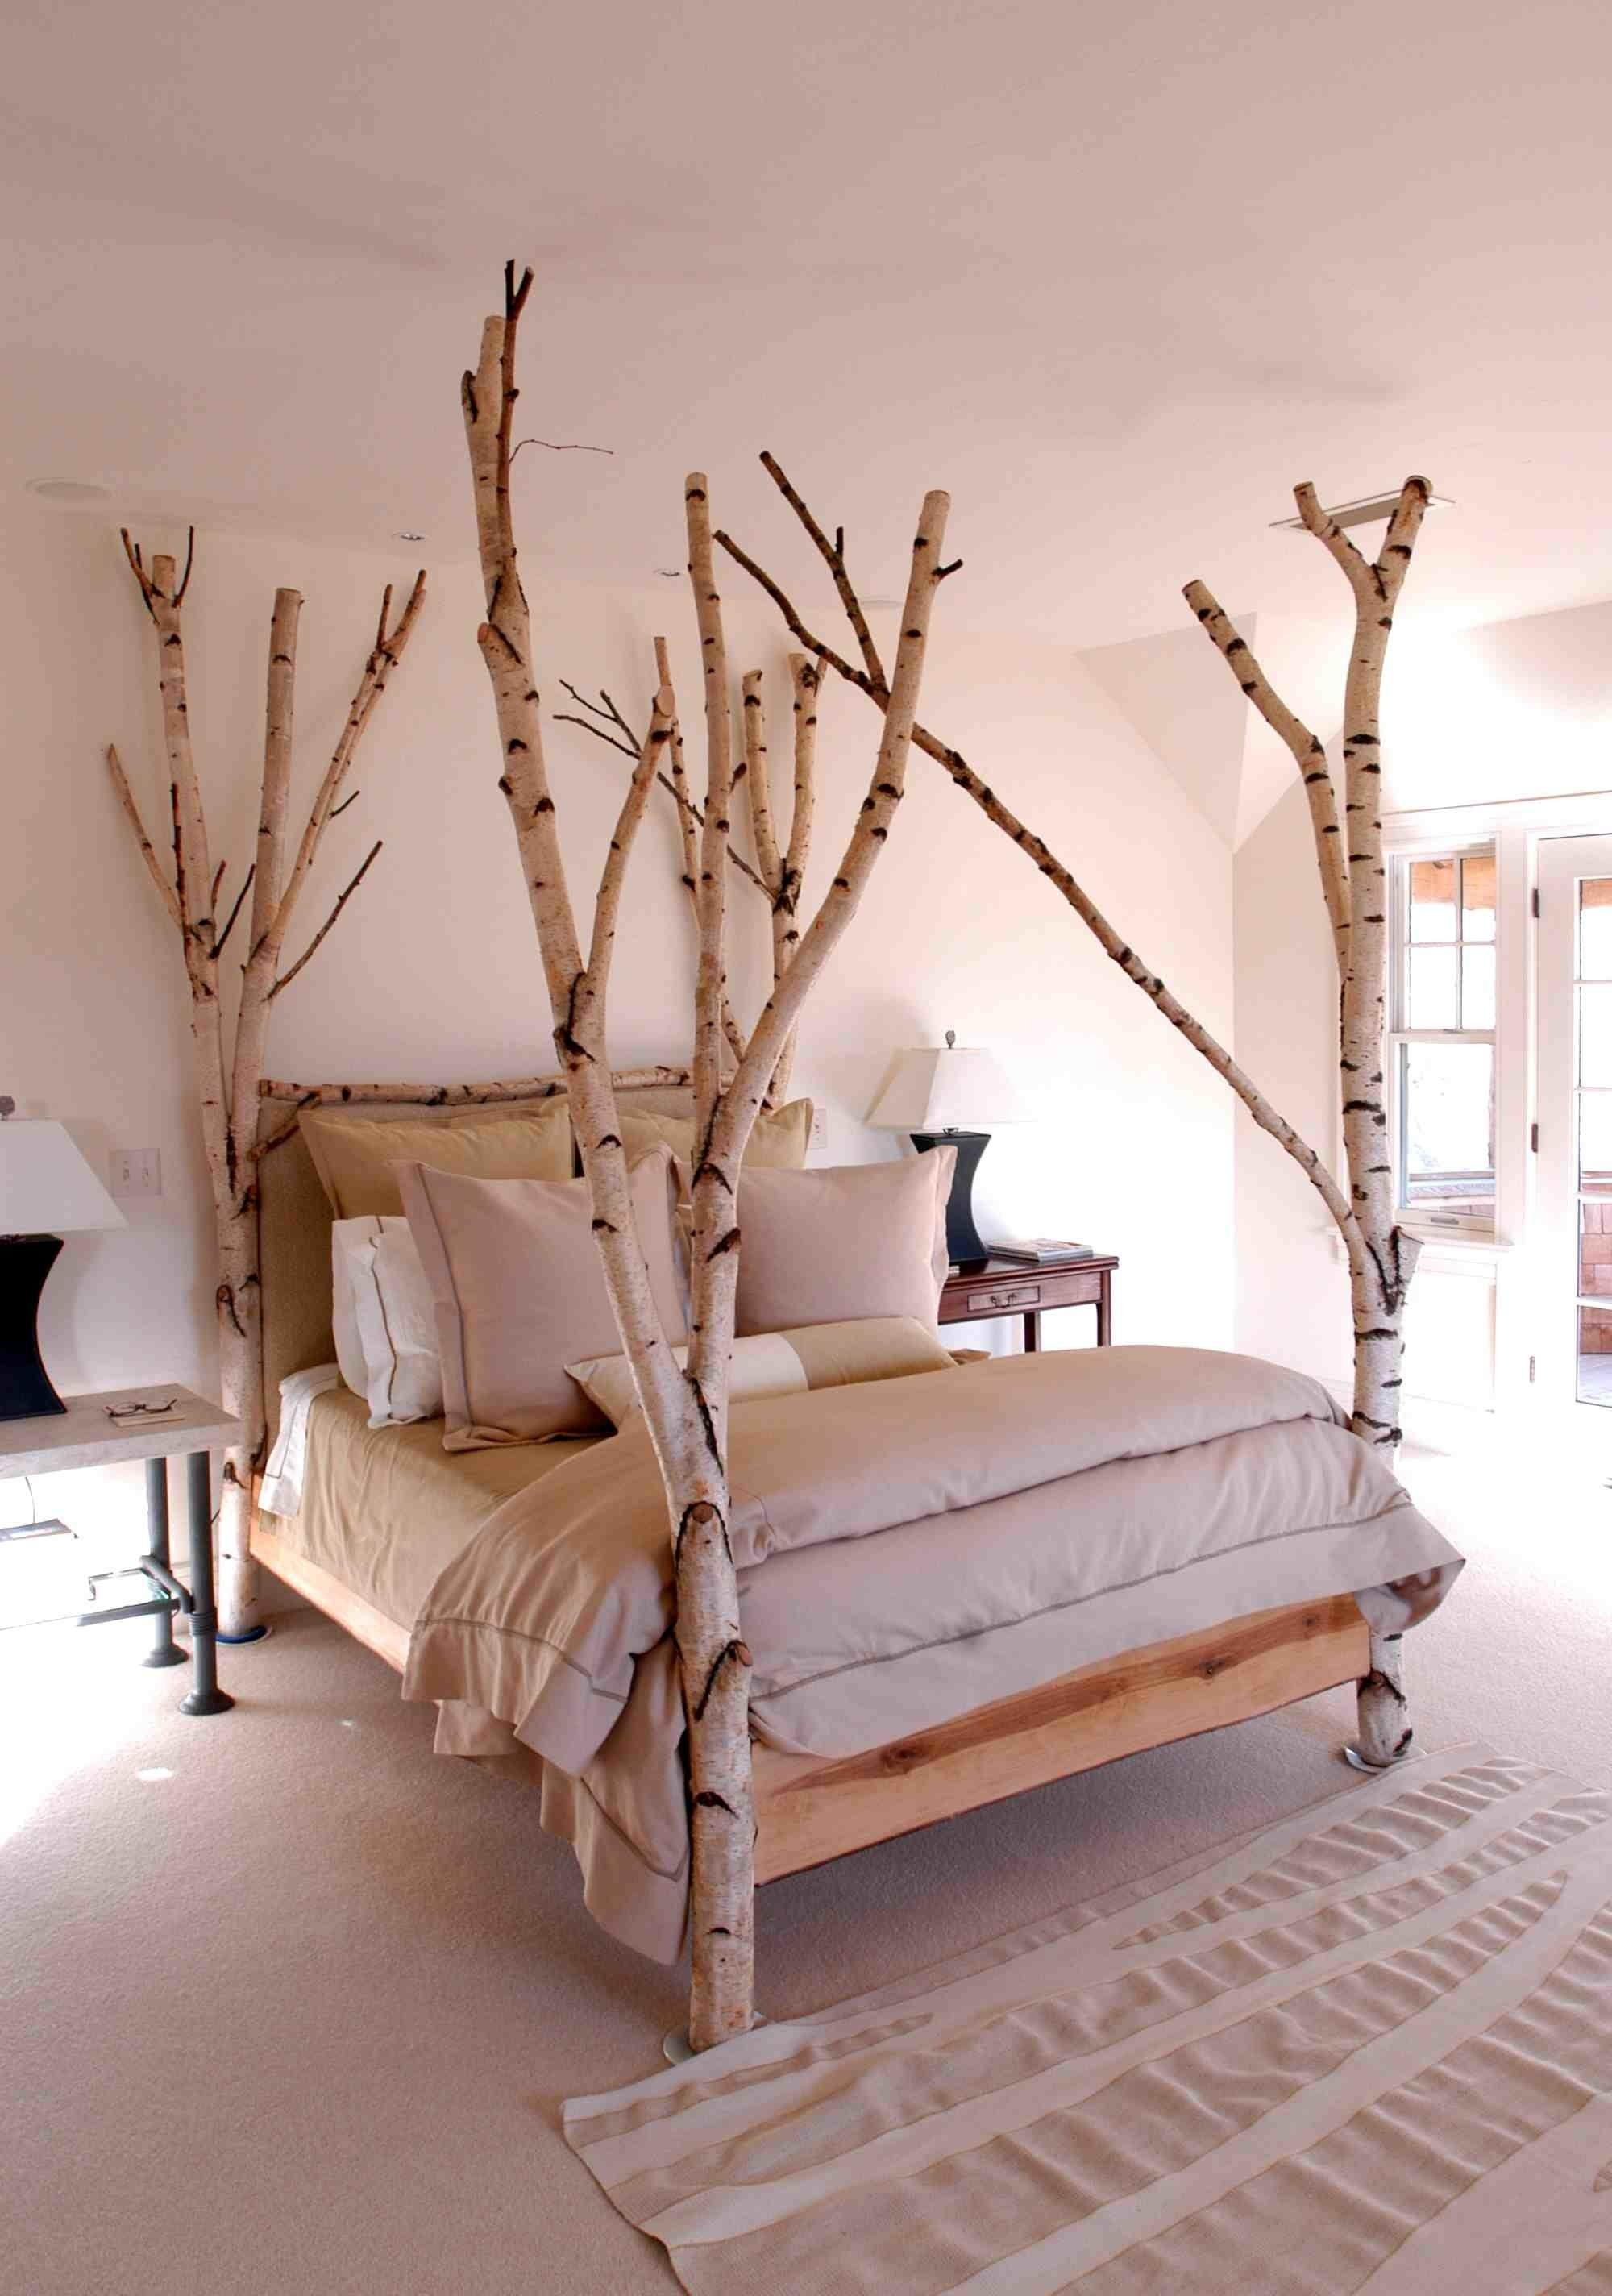 Incroyable This Original Bed Includes Four Posts In The Form Of Natural Trees. Black  And White Colors Are Dominating In This Stylization. Birch Furniture 1